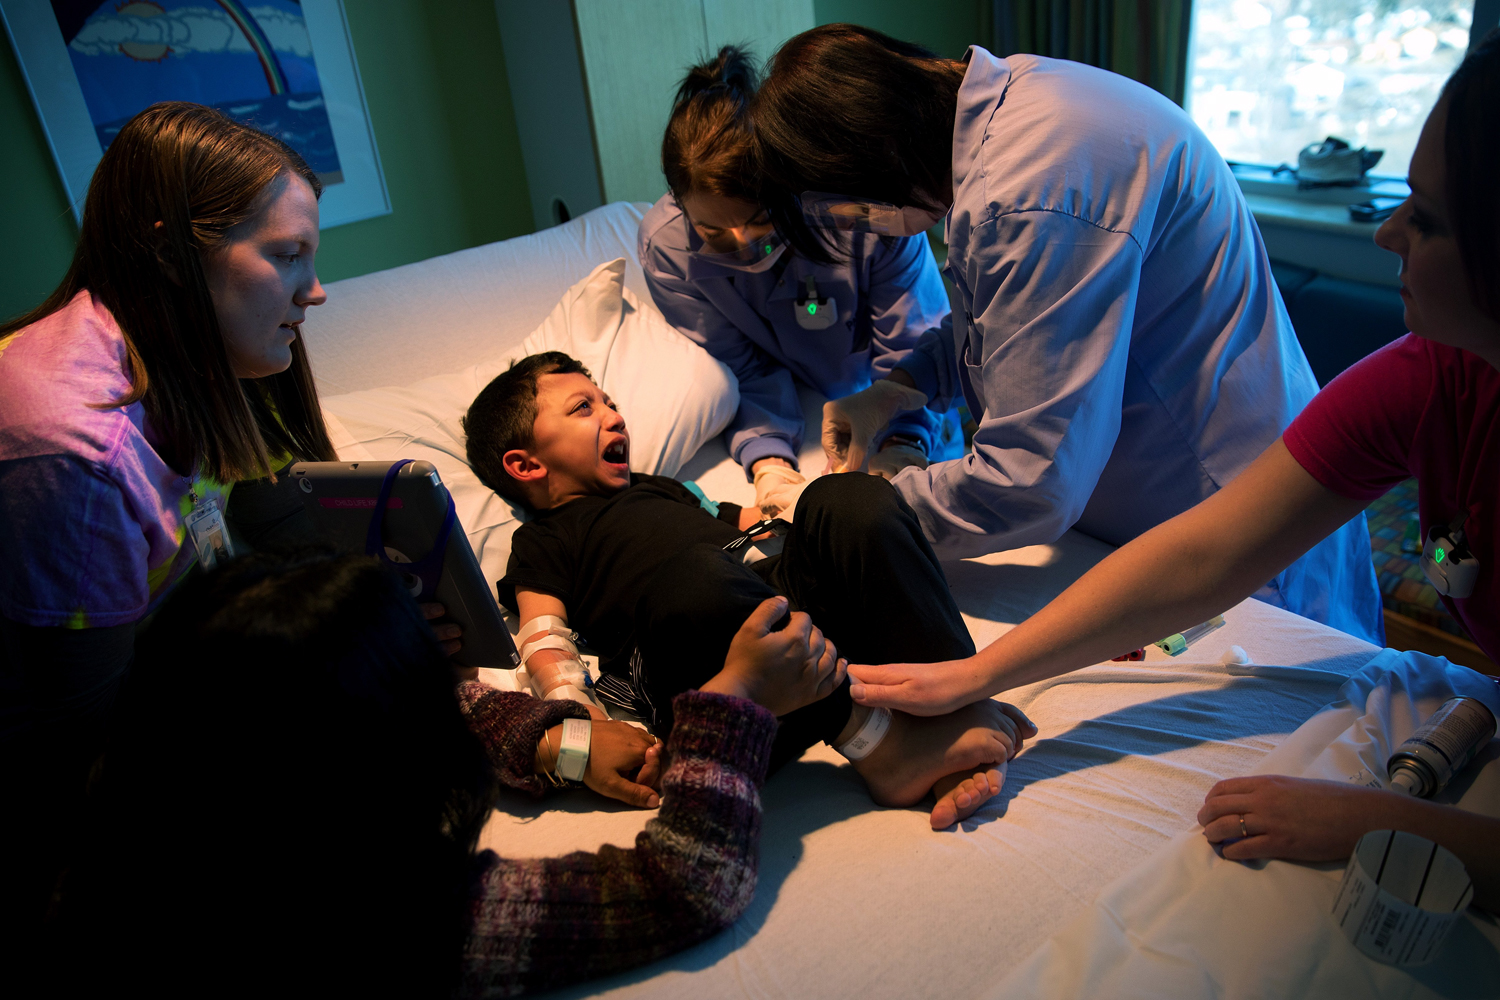 Nurses attempt to connect an IV to Arshaan's left arm before starting an infusion. Small veins that tend to burst frequently and a fear of needles make this process traumatic for the brothers.